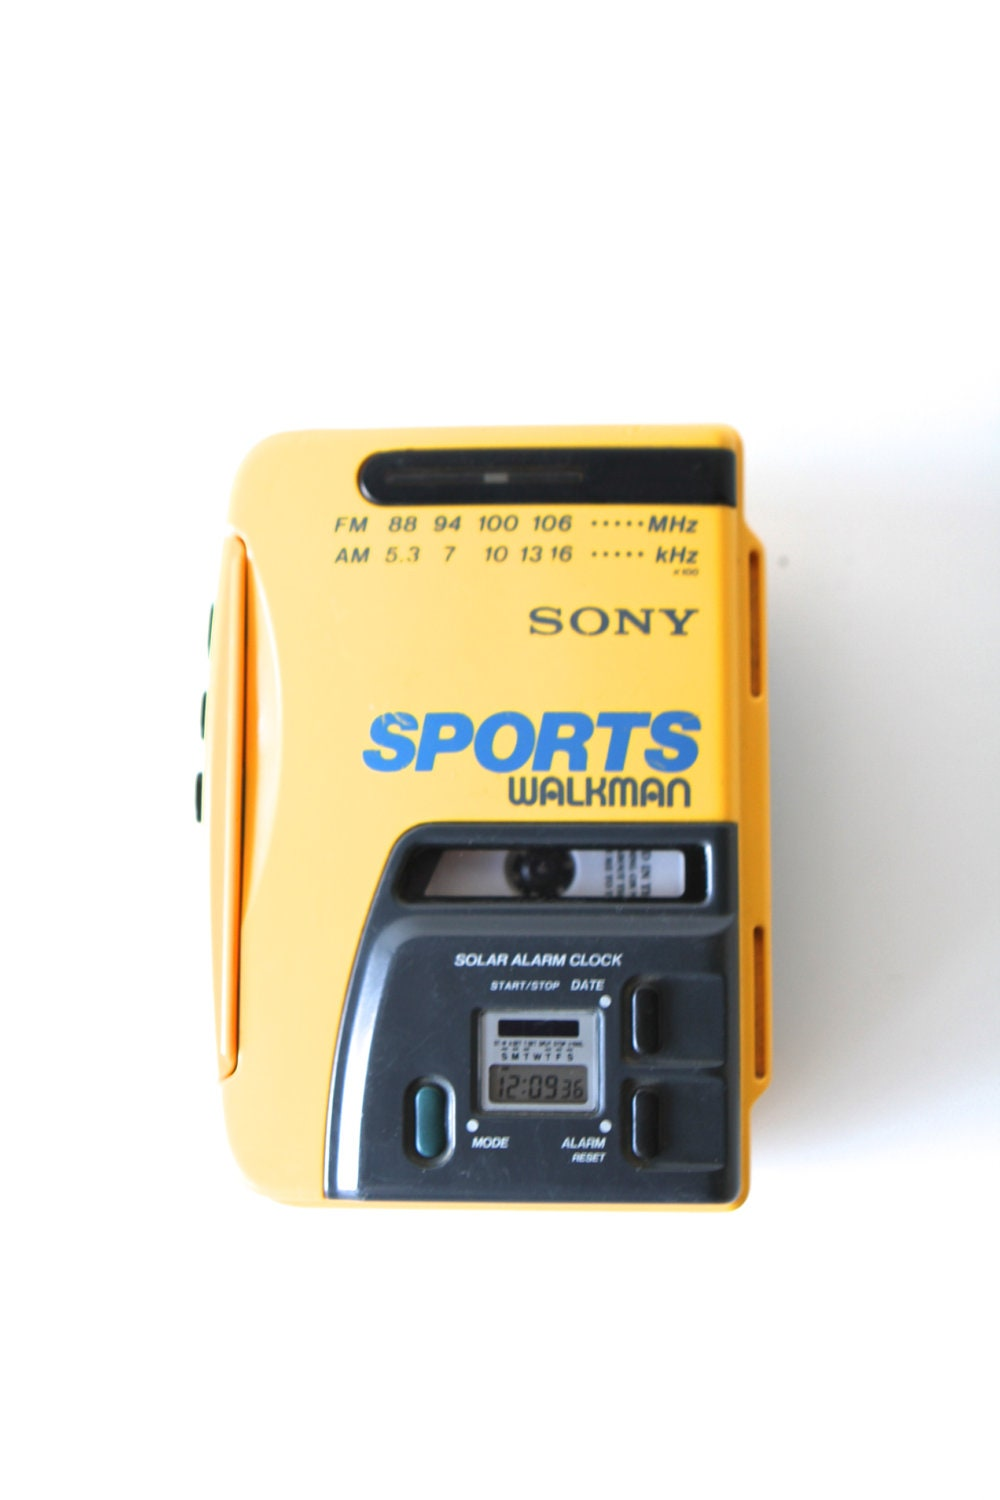 the gallery for  gt  sony dream machine manual Sony AM FM Clock Radio sony icf-c318 am/fm clock radio manual